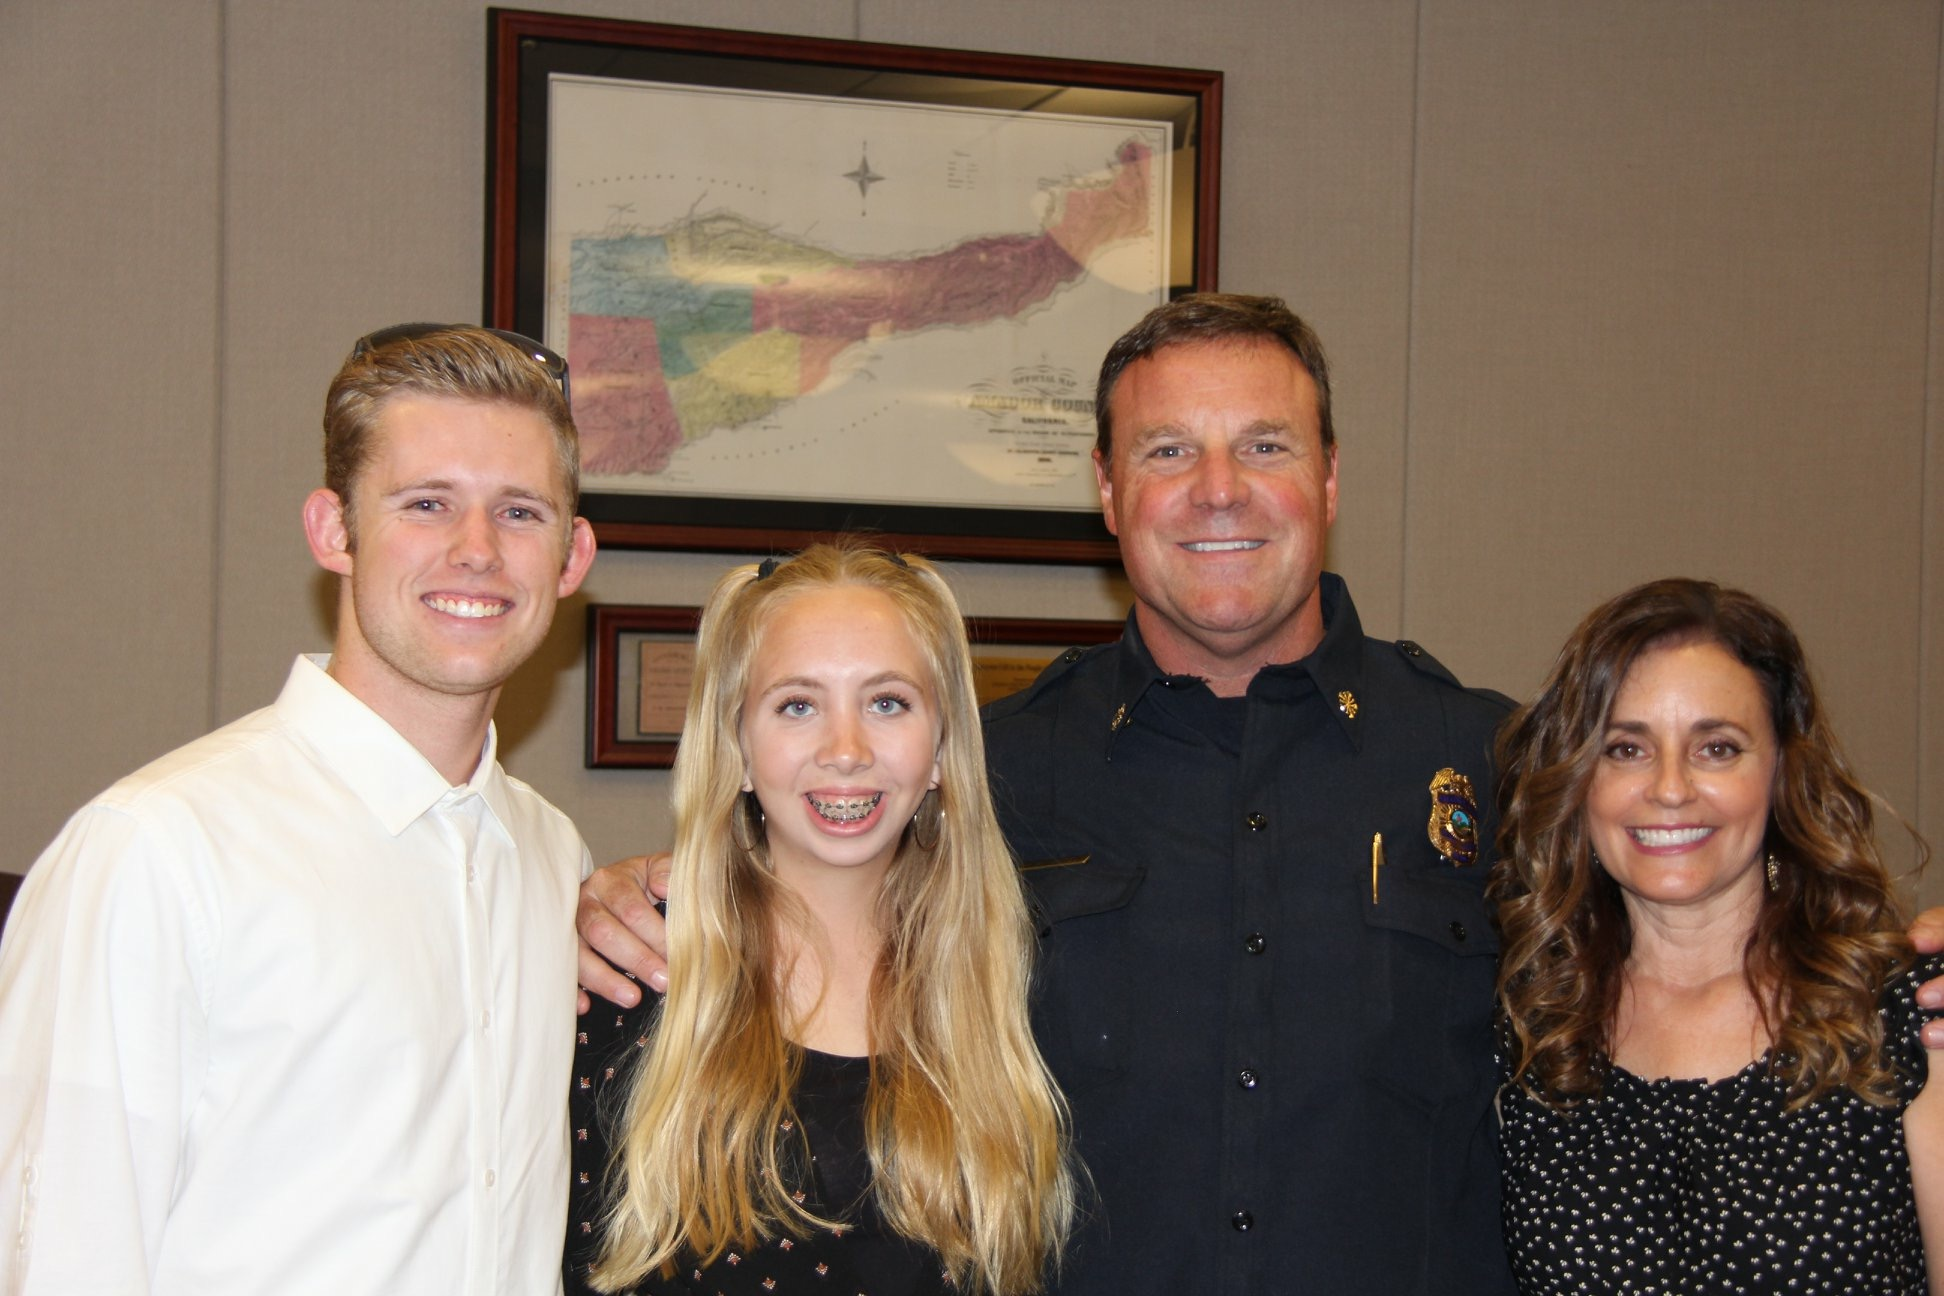 Fire Chief – Amador Fire Protection District